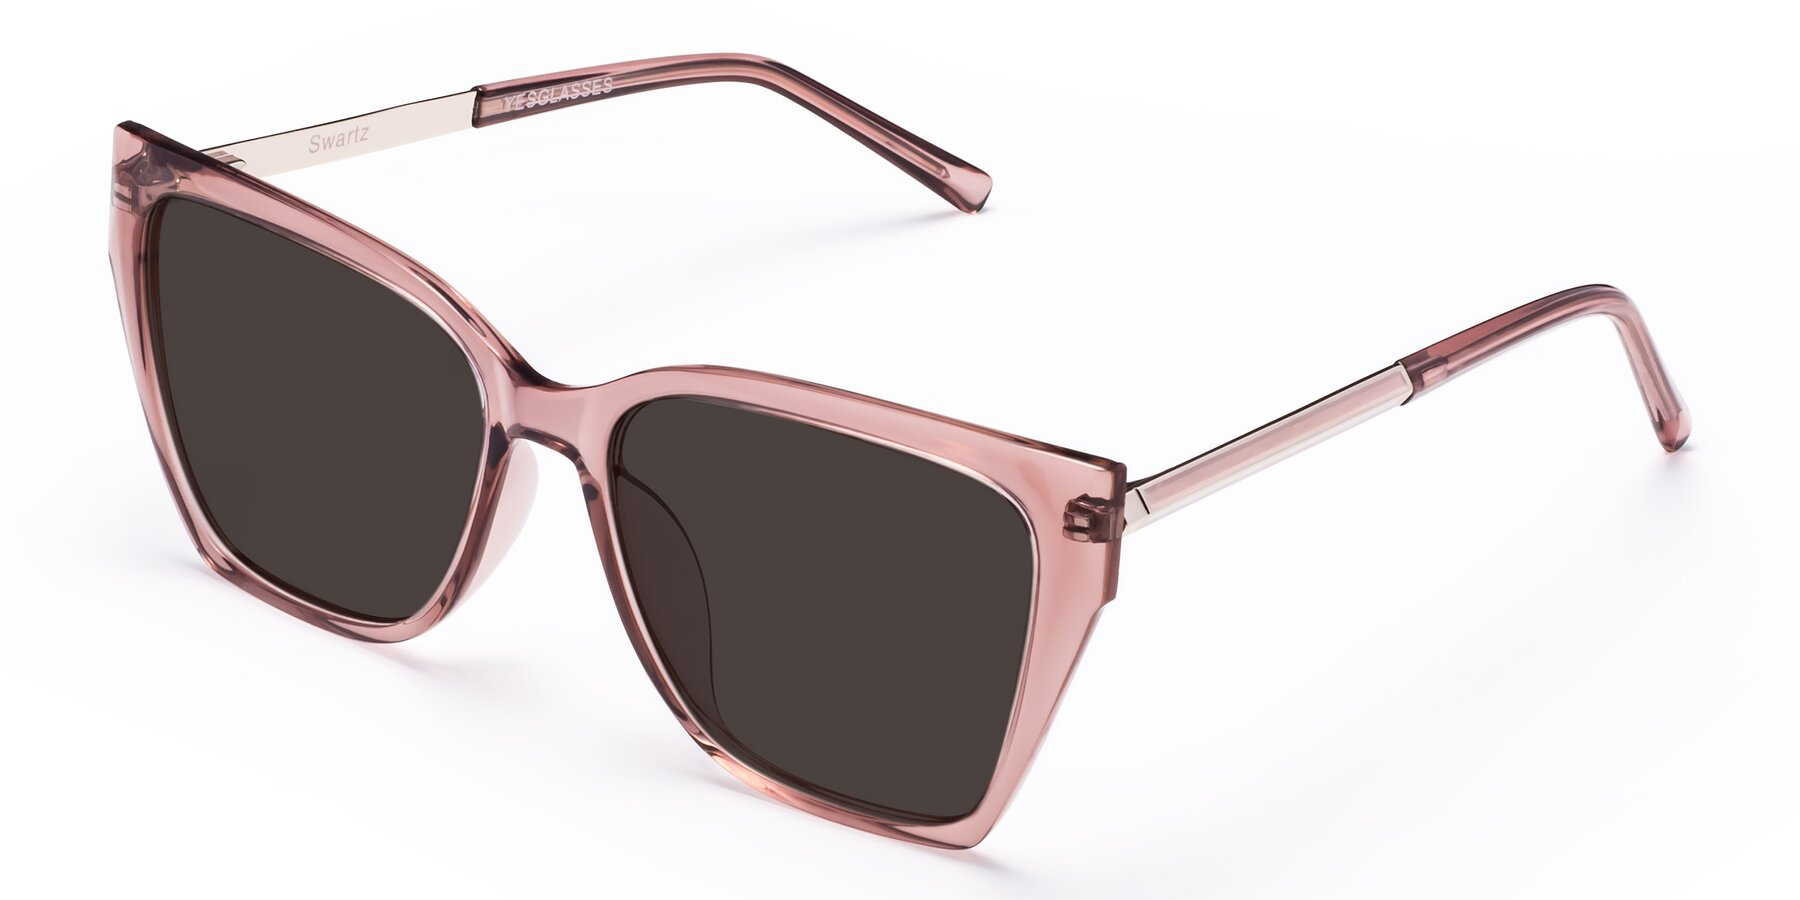 Angle of Swartz in Grape with Gray Tinted Lenses